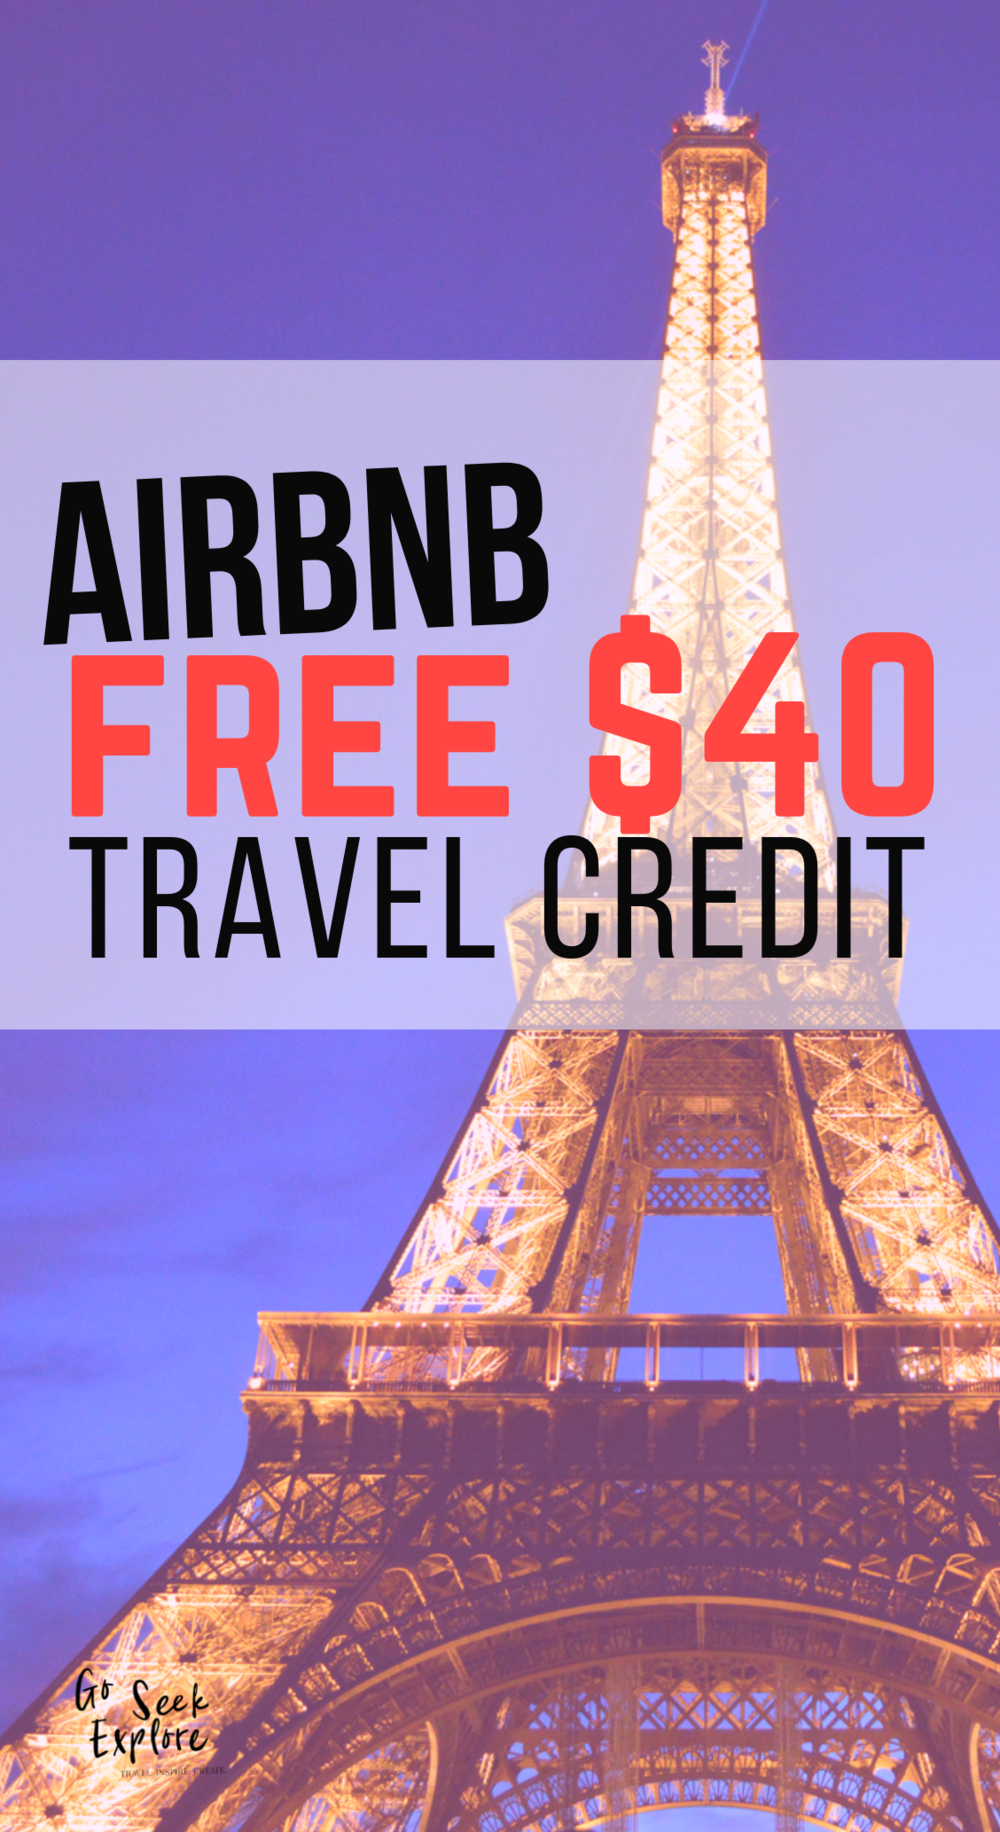 Get a free travel credit worth $40 to Airbnb! (Claim now, book later!) Airbnb is my go-to site for amazing places to stay while traveling. You live like a local and have access to the amenities that you would back home. I've loved finding homes with a fully equipped kitchen, washer/dryer, desk, wifi, & great views. Plus, you often get great tips from a local on what you should ACTUALLY do in their city - after all, they're the experts! Click through & get your free Airbnb discount. Bon voyage! / Paris-Airbnb-free-travel-credit